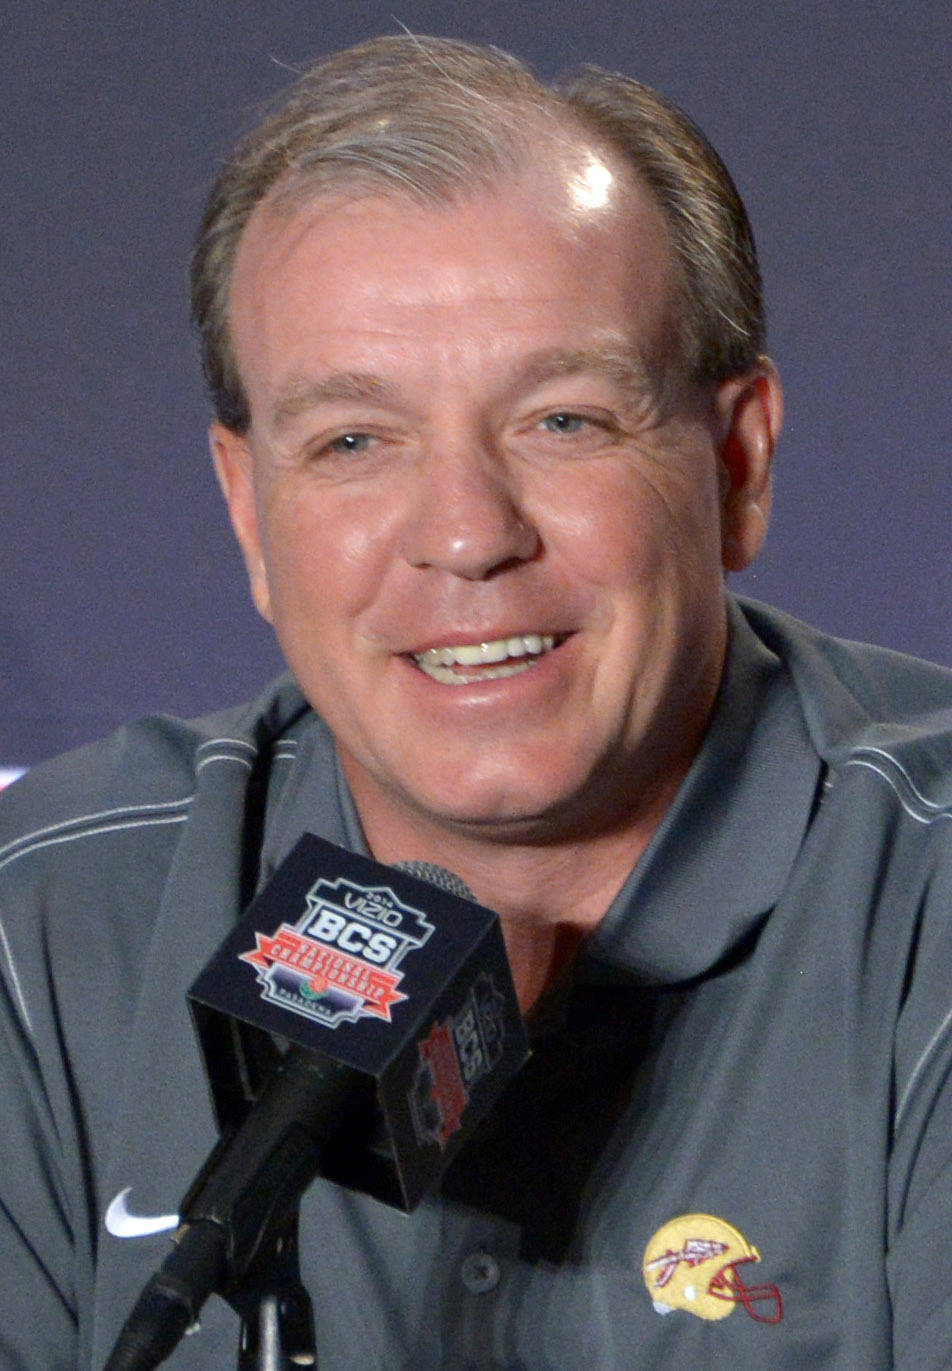 Florida State Seminoles coach Jimbo Fisher at 2014 BCS National Championship press conference at Newport Beach Marriott. Mandatory Credit: Kirby Lee-USA TODAY Sports